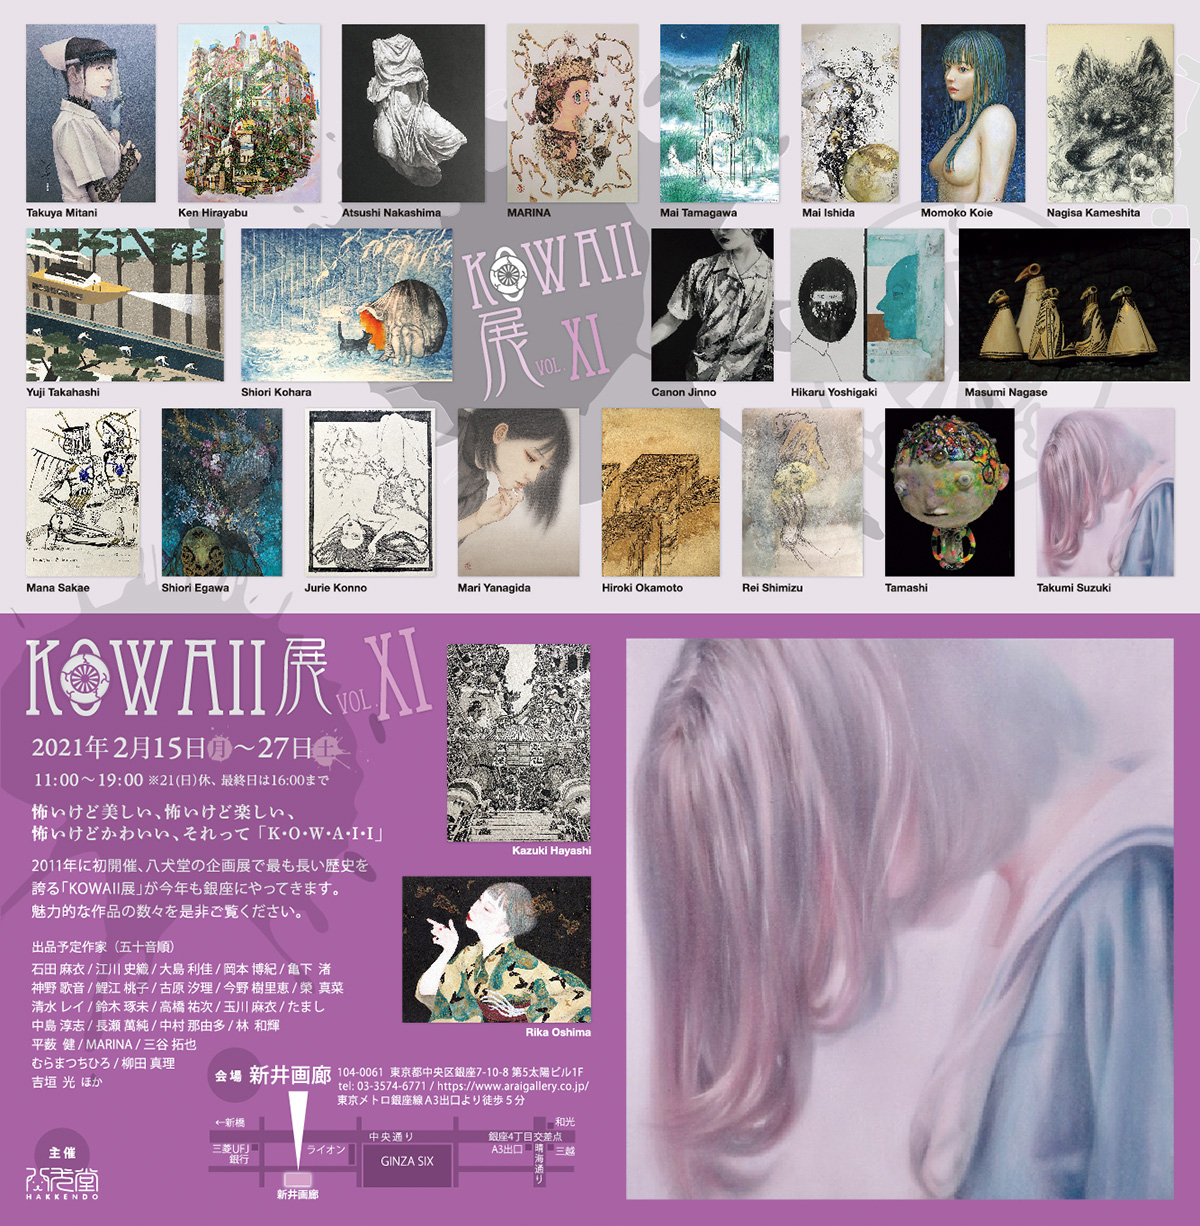 KOWAII展 vol.XI